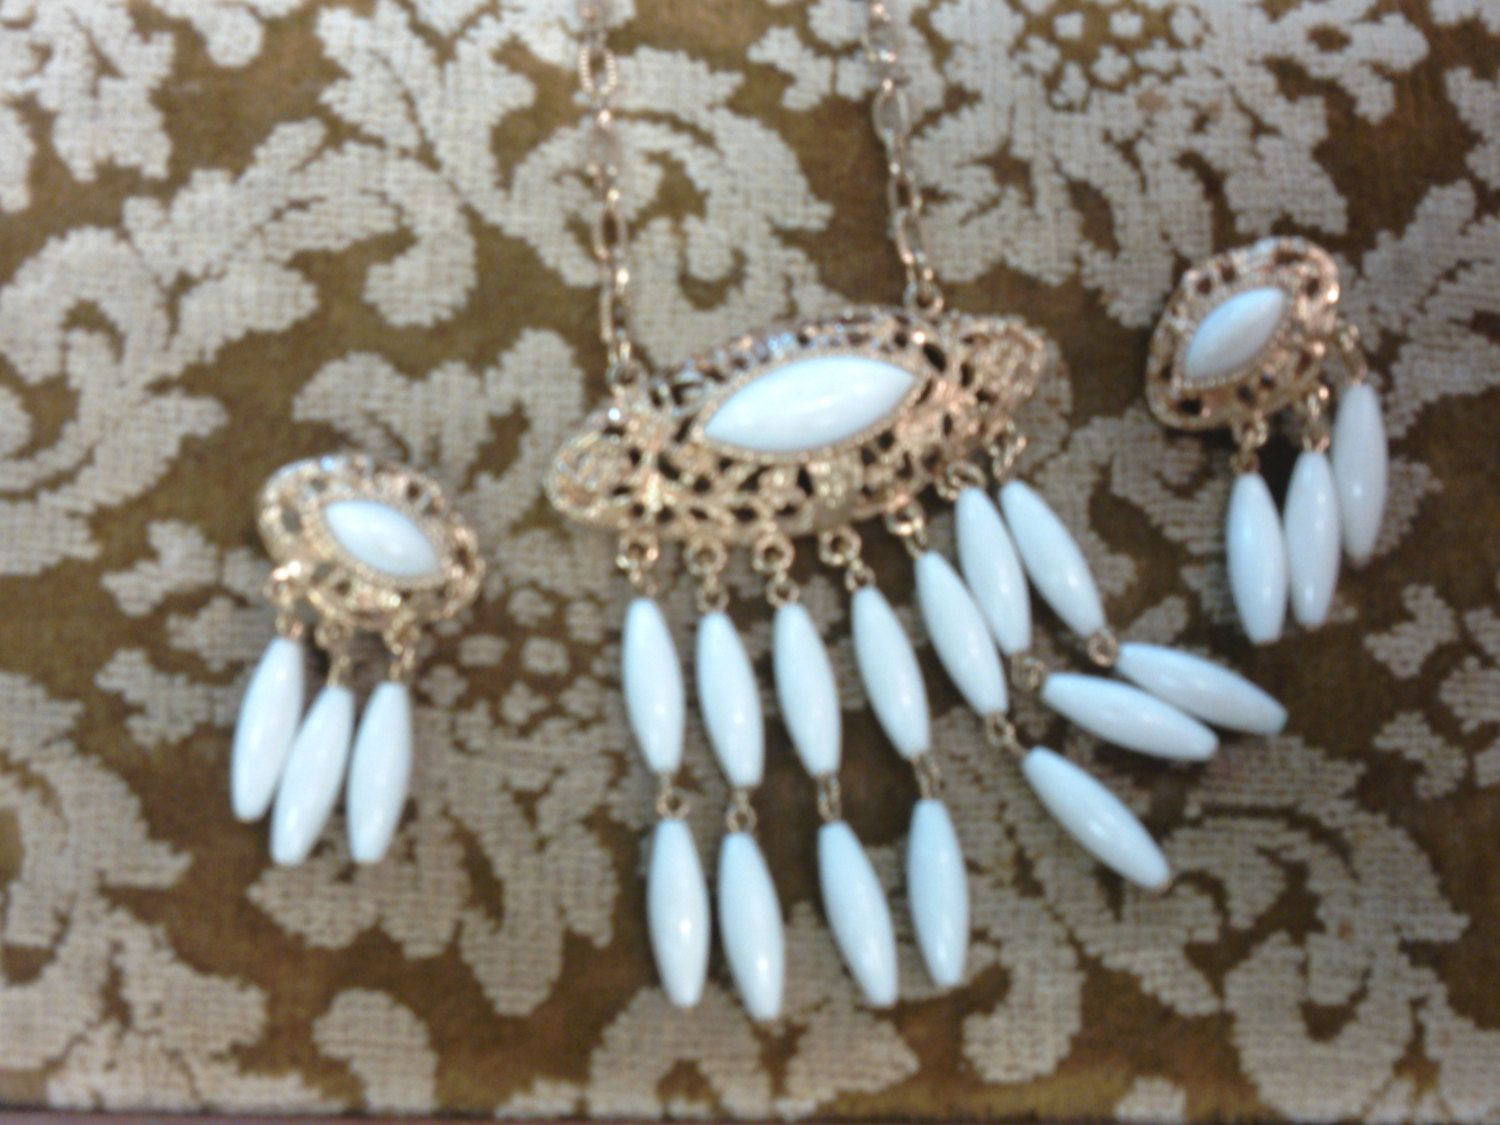 Vintage Caroline Emmons White and Gold Dangling Earrings and Necklace Set - 1960s by strangelark on Etsy